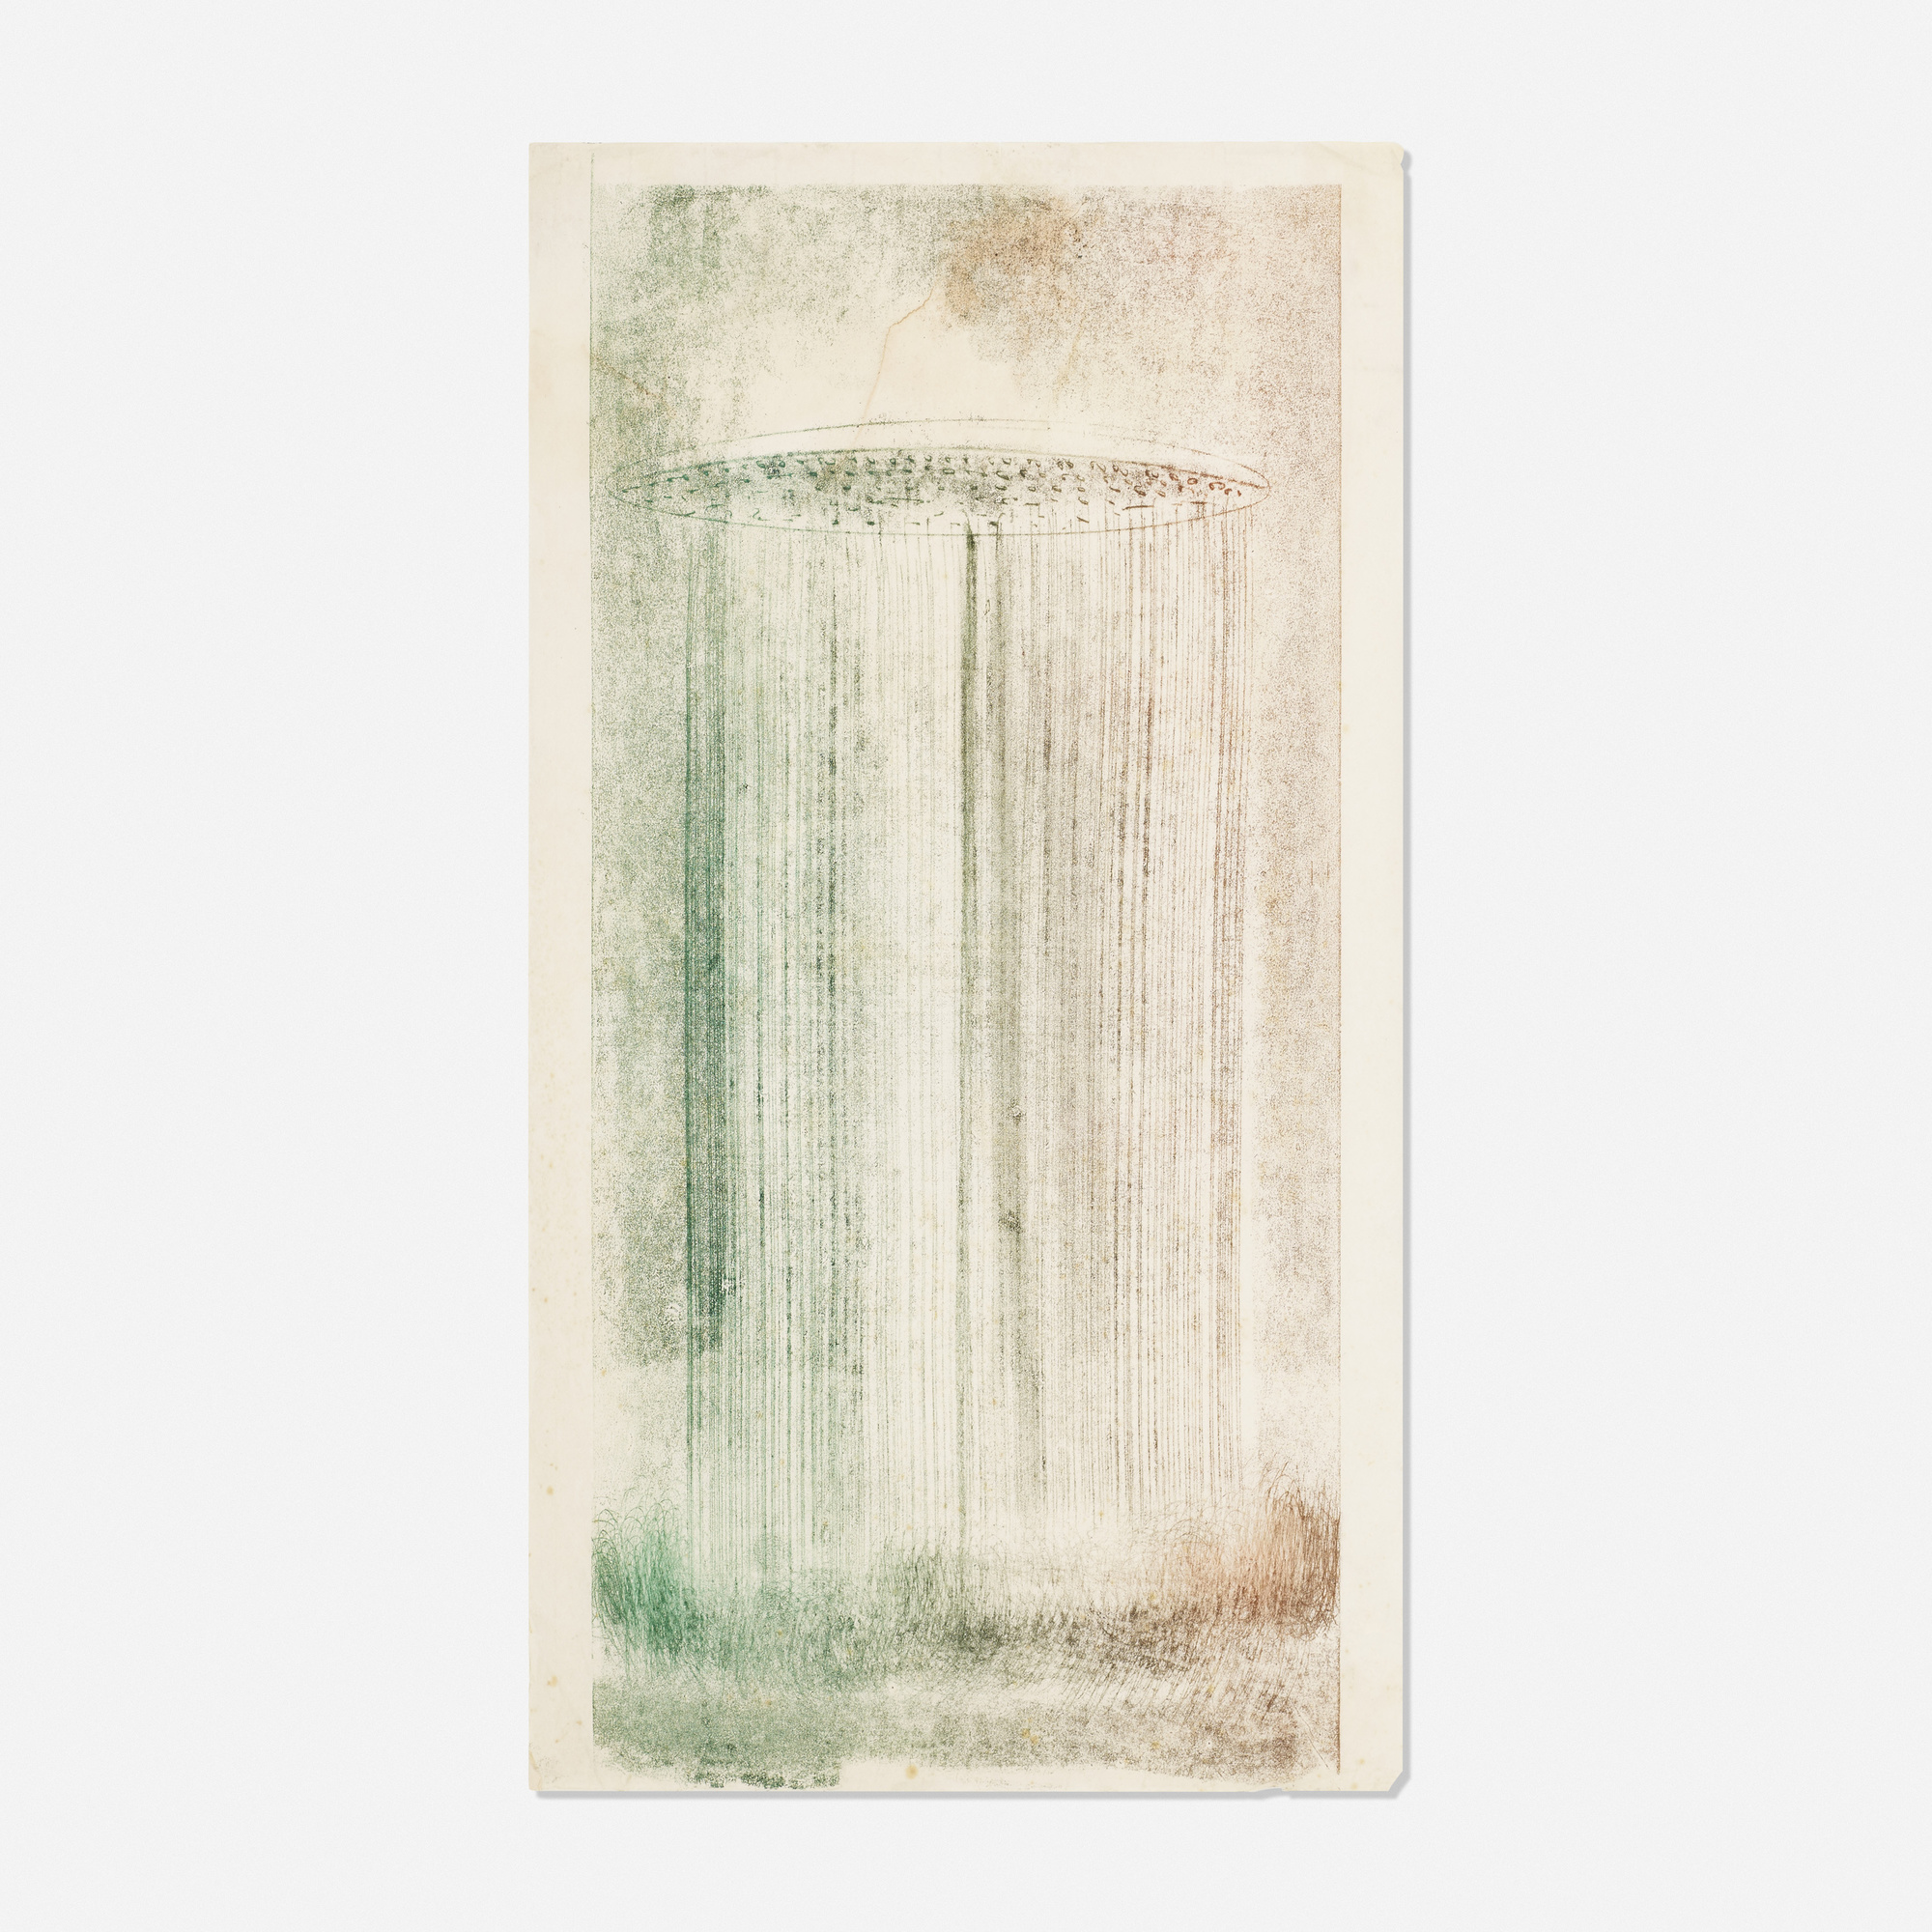 392: Harry Bertoia / Untitled (study for the Standard Oil commission) (1 of 1)